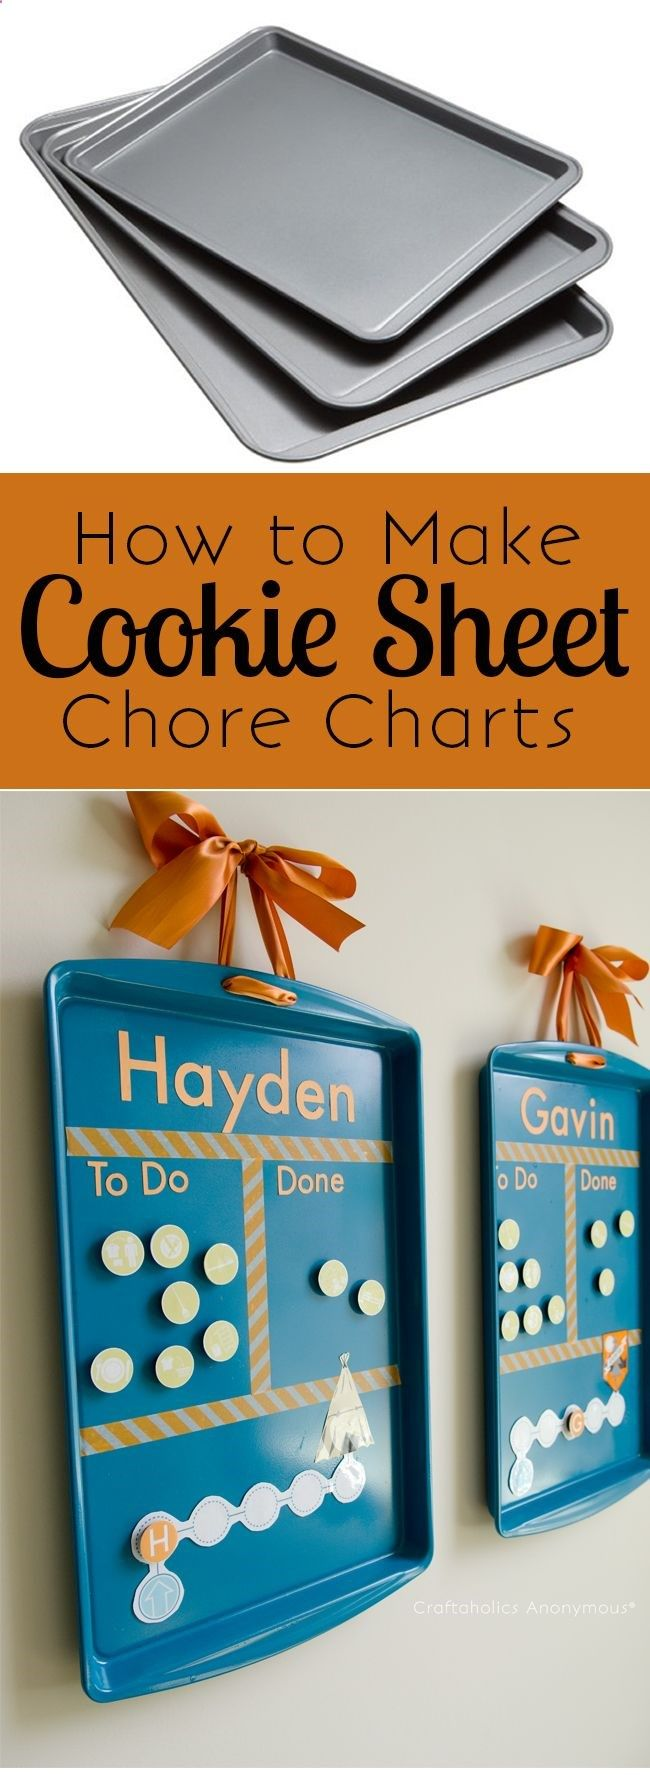 How to make Cookie Sheet Chore Charts. Cheap   easy to make. Love the magnet idea!